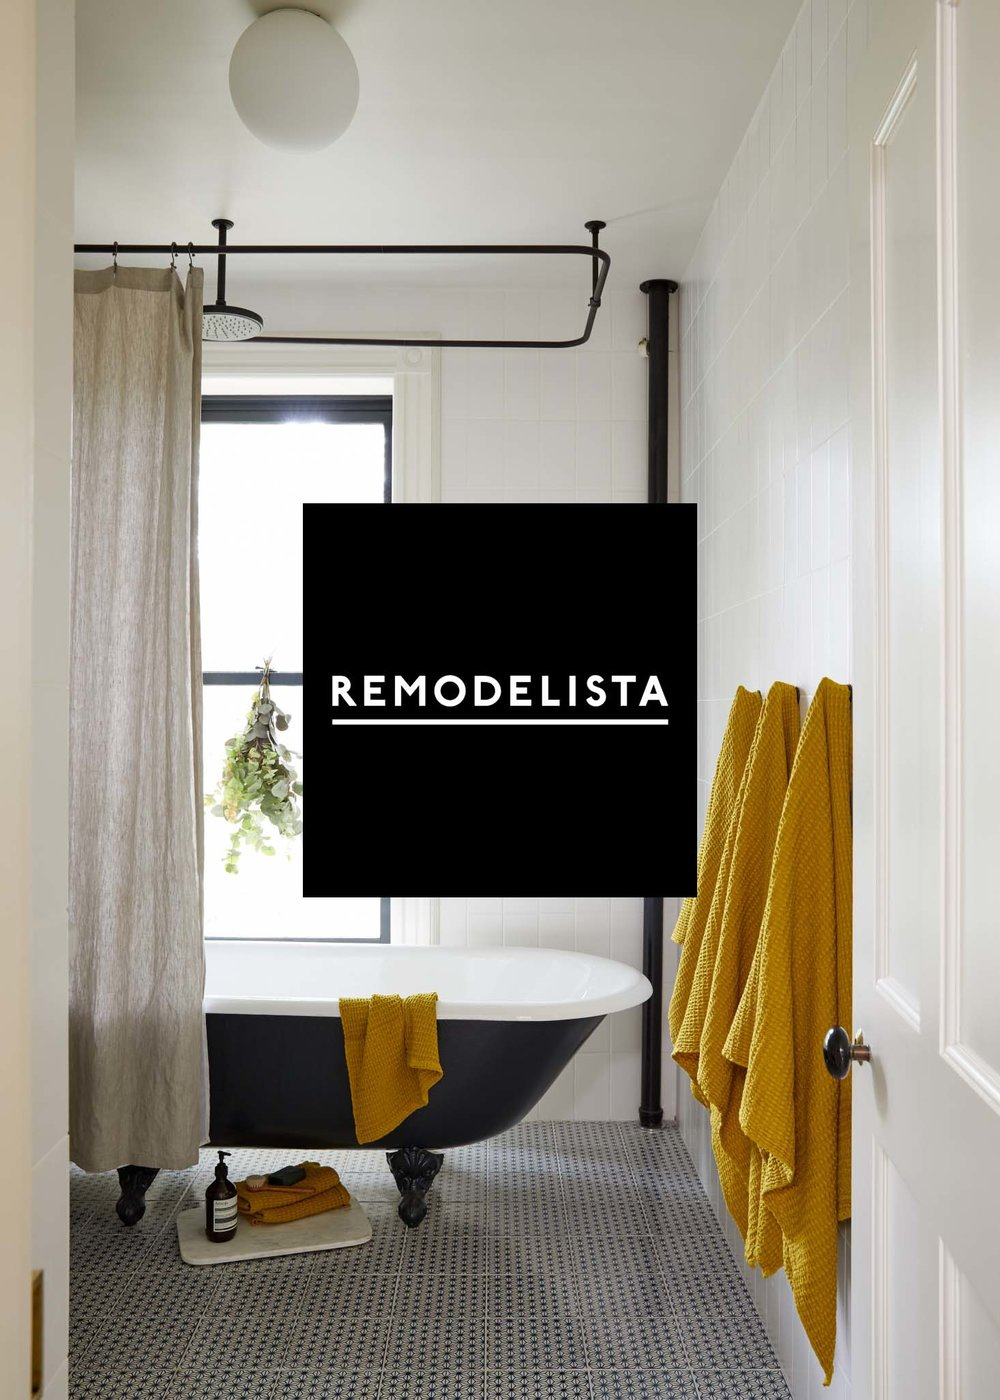 REMODELISTA - THE SENTIMENTAL MINIMALIST, 2018